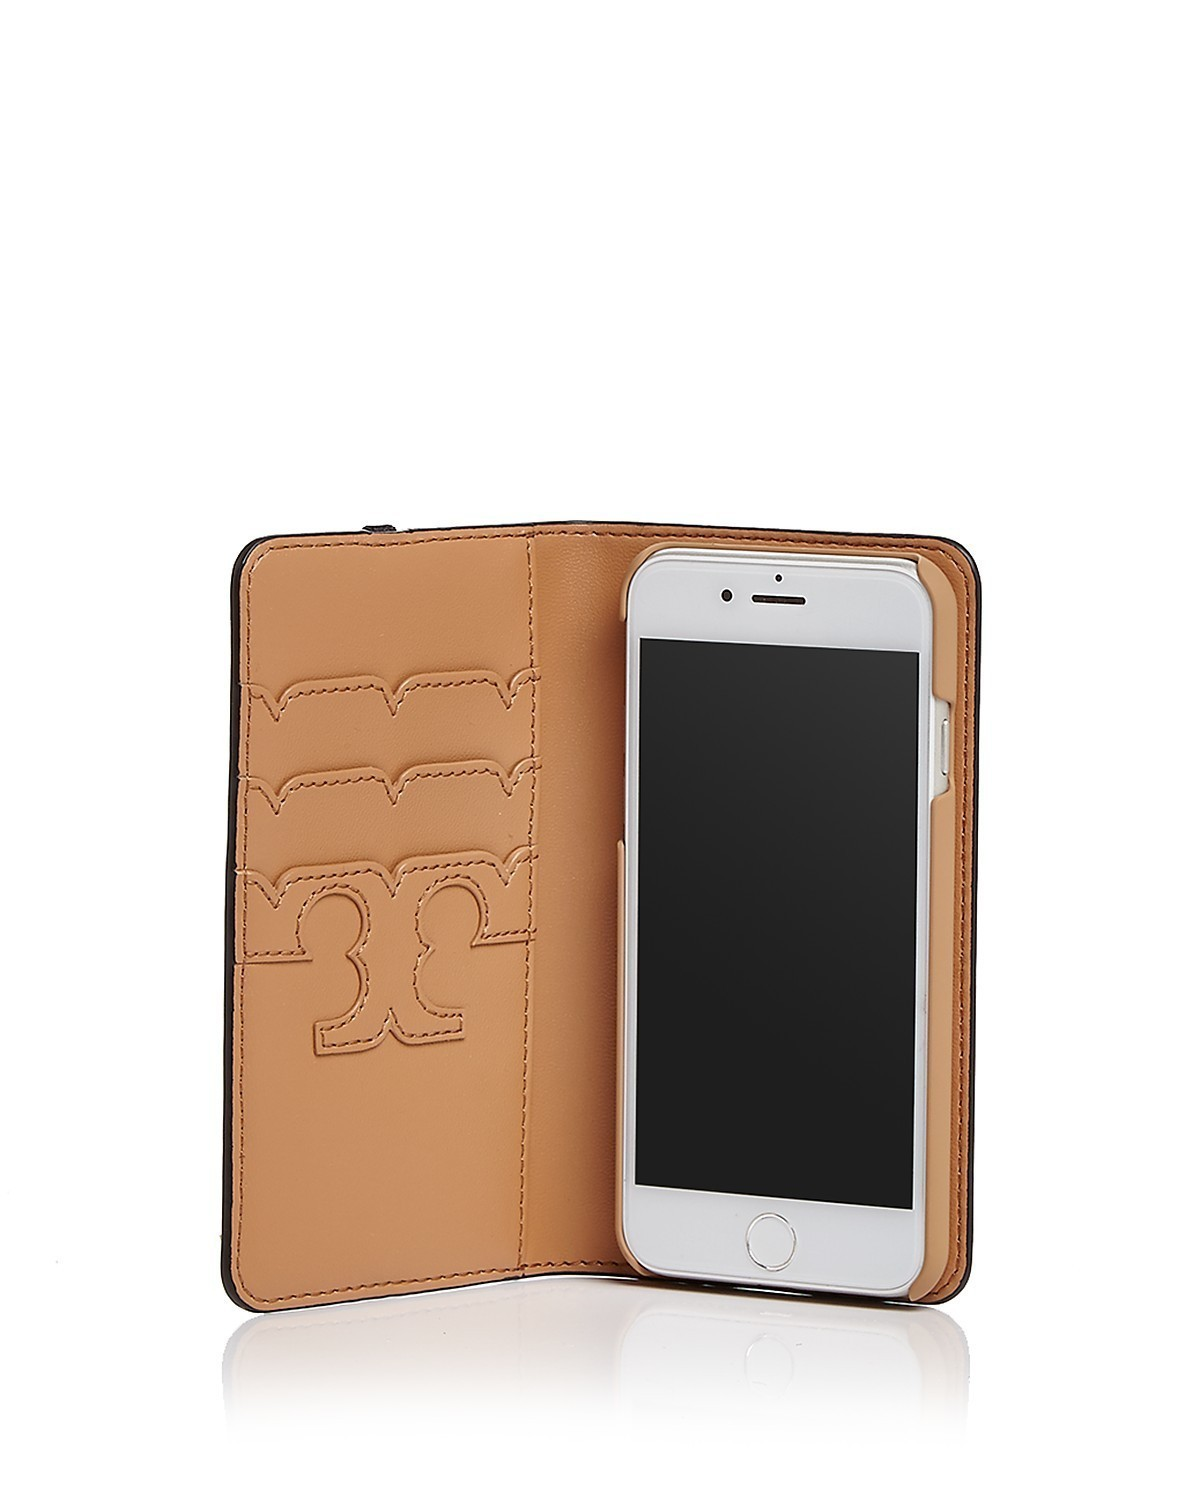 ★国内即発送【Tory Burch】PARKER FOLIO IPHONE 7/8 ケース